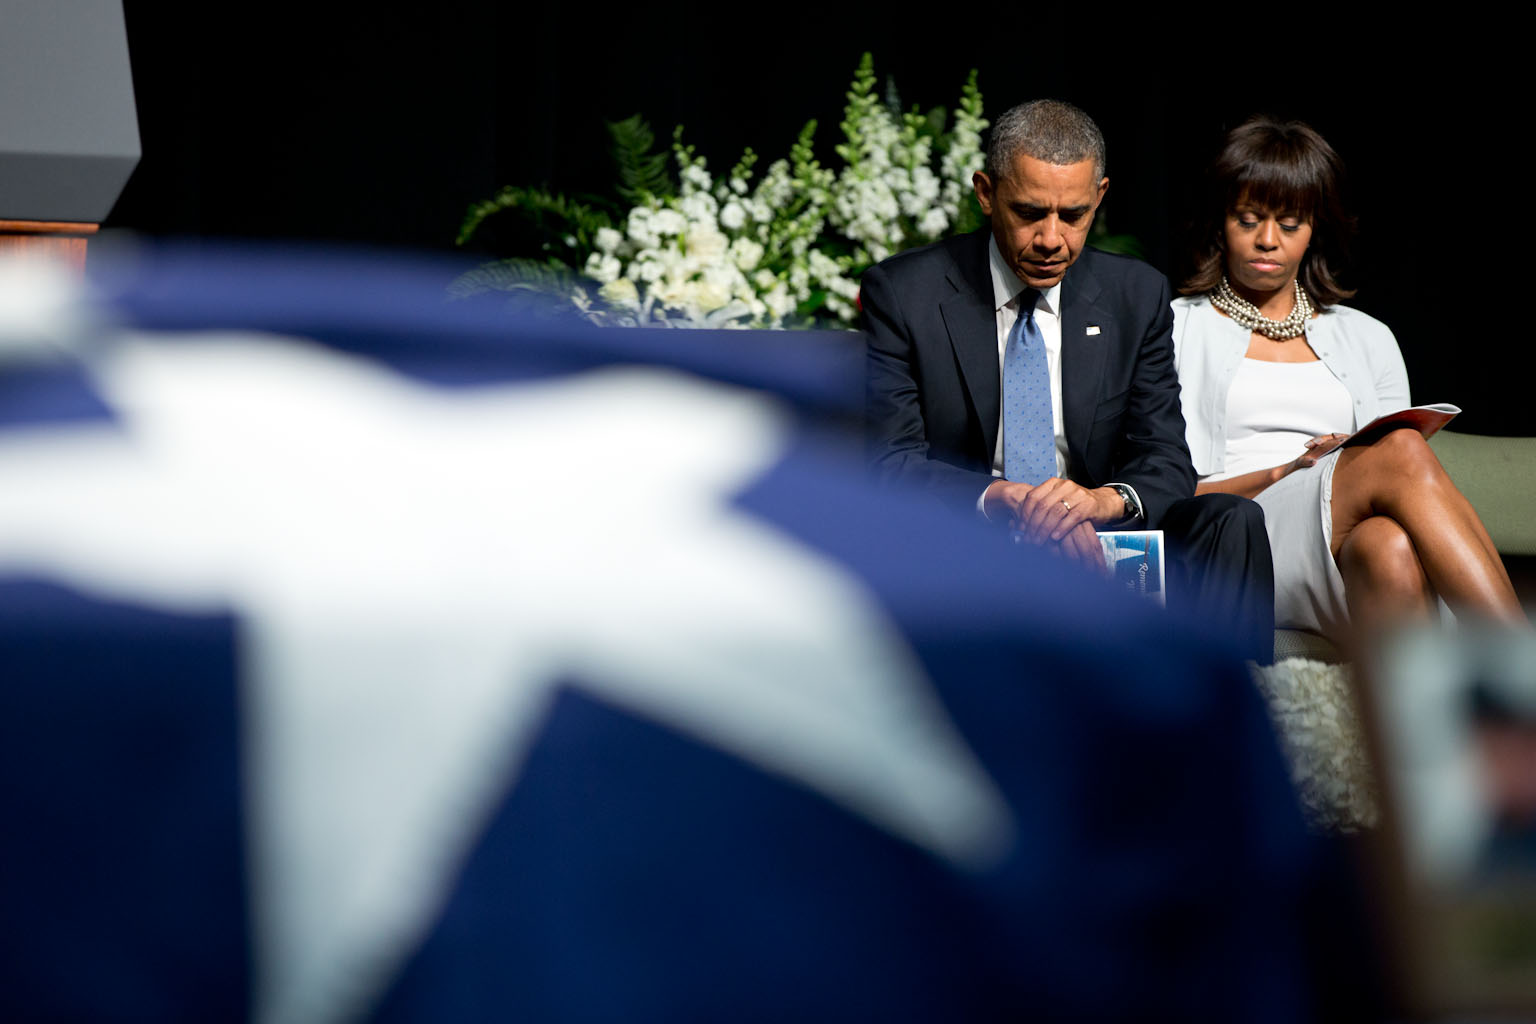 President Barack Obama and First Lady Michelle Obama attend a memorial service at Baylor University